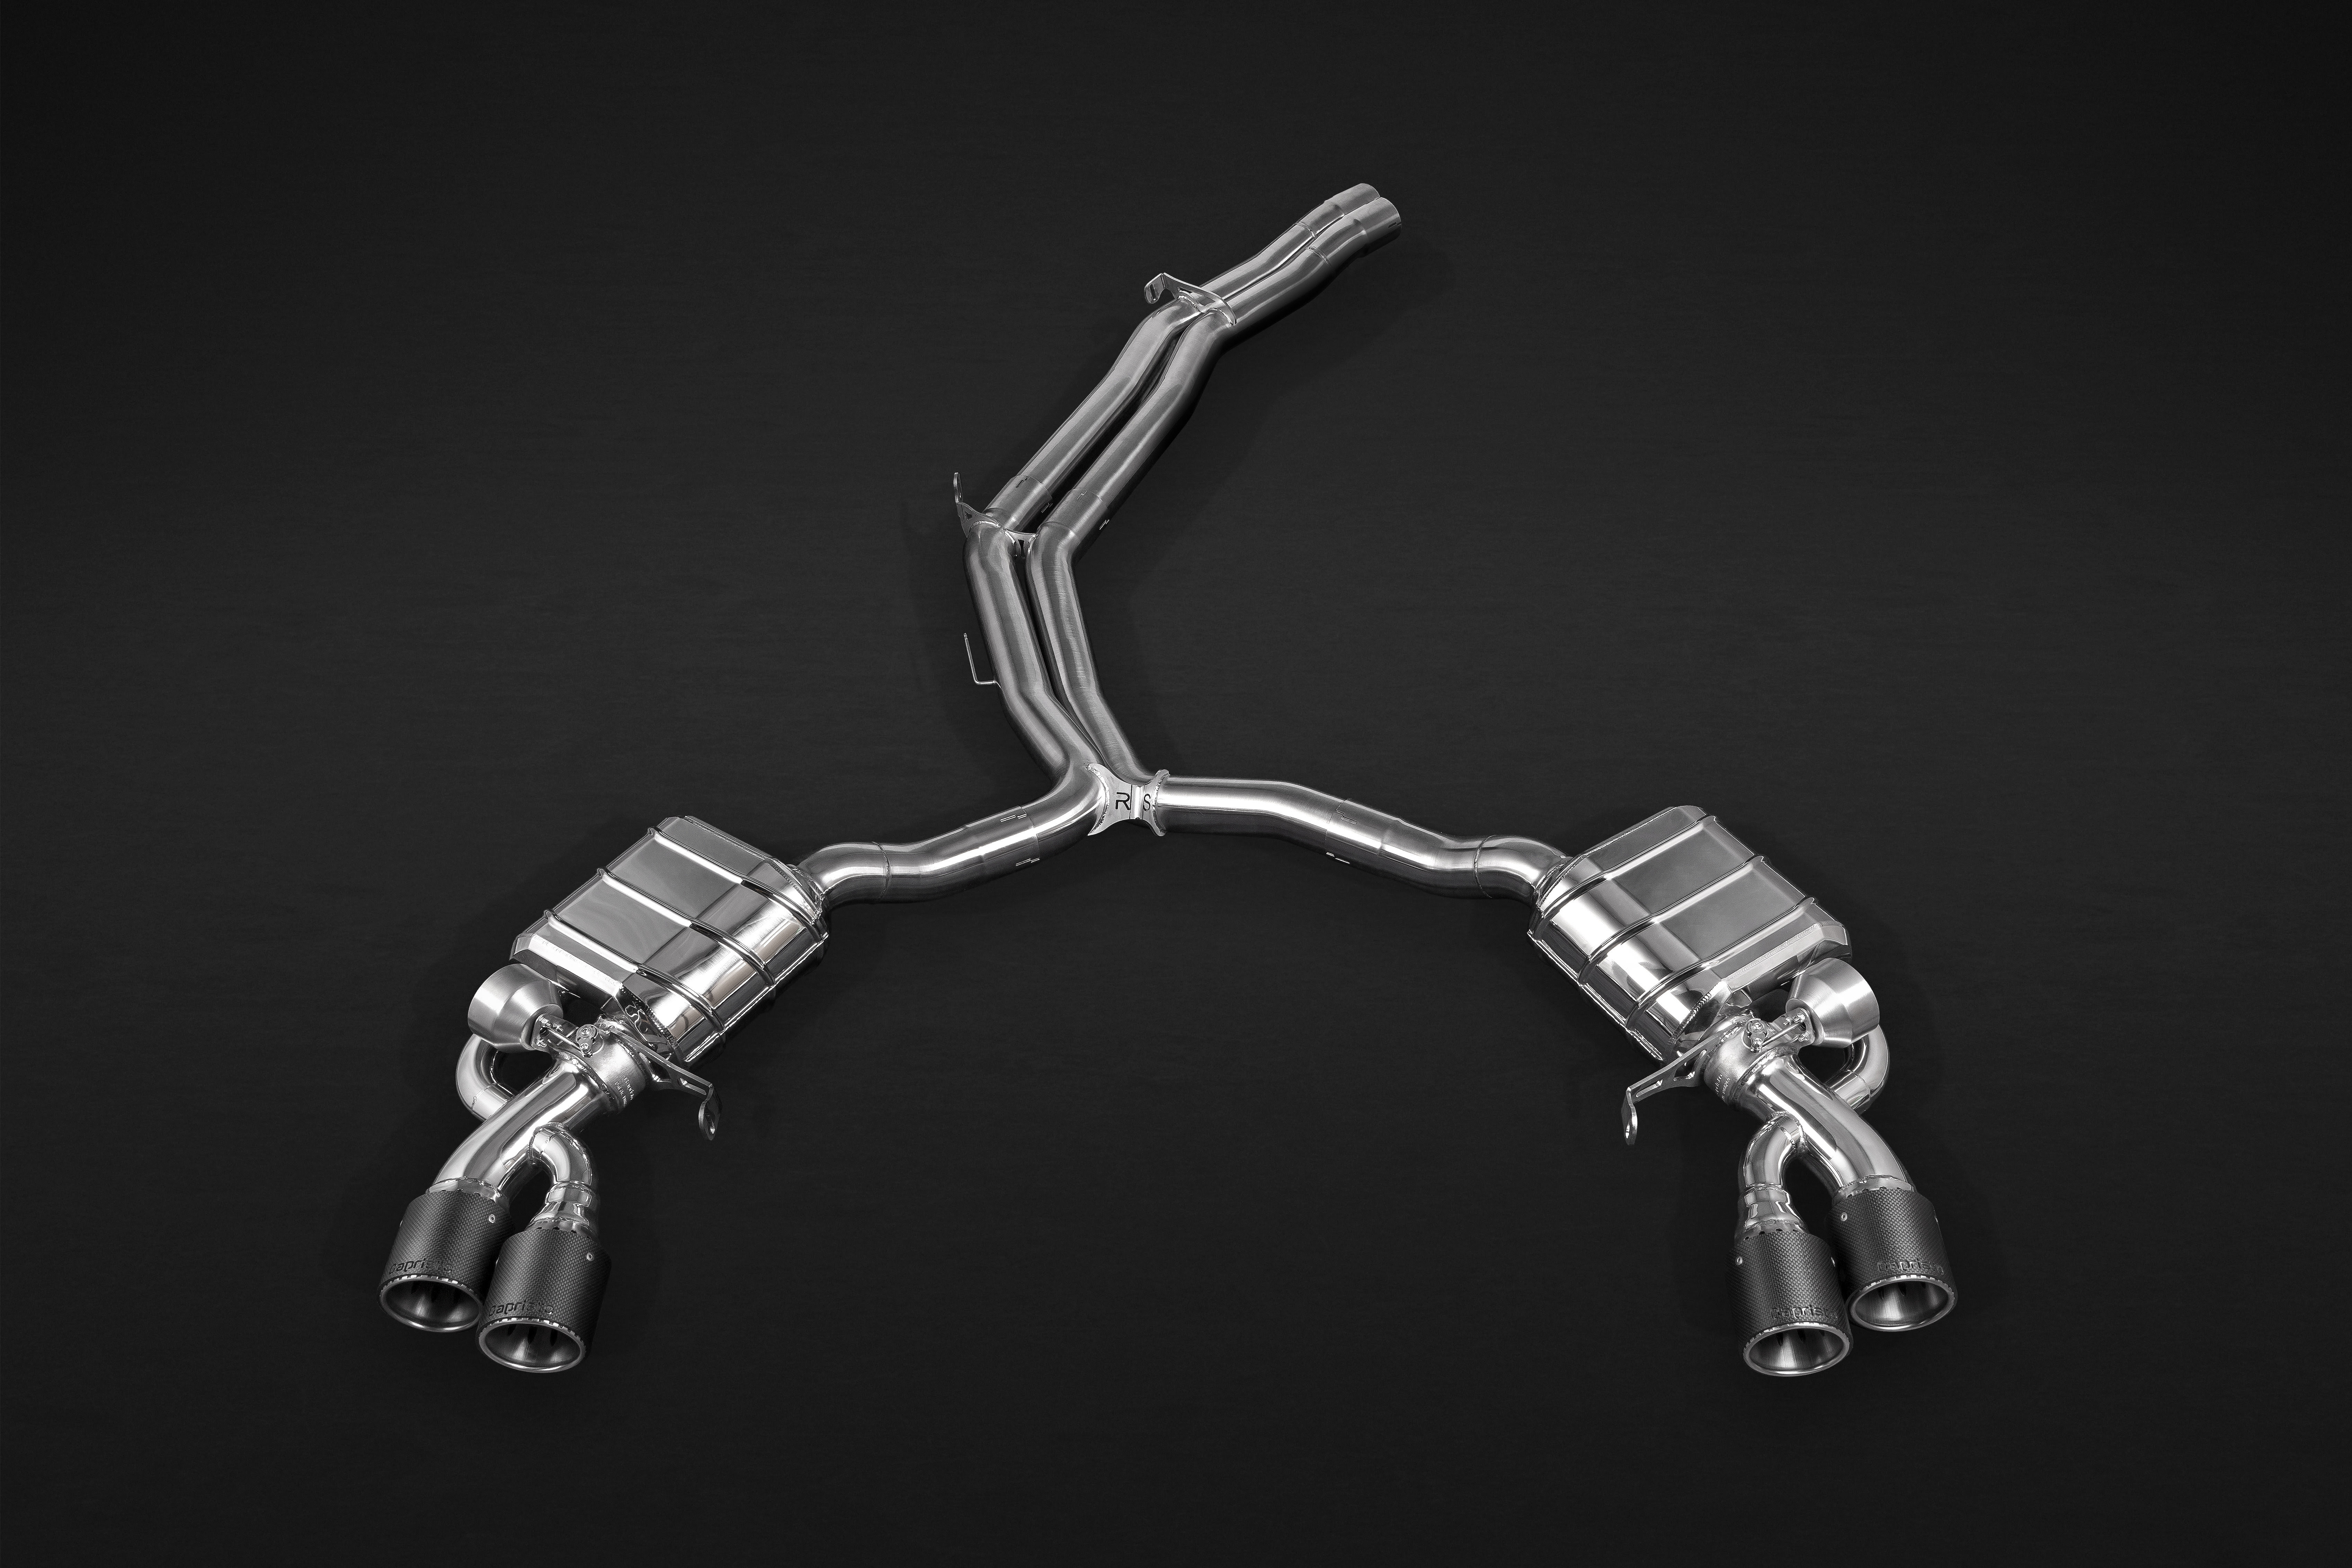 PERFORMANCE ONE - Capristo Valved Exhaust System for Audi RS5 Sportback